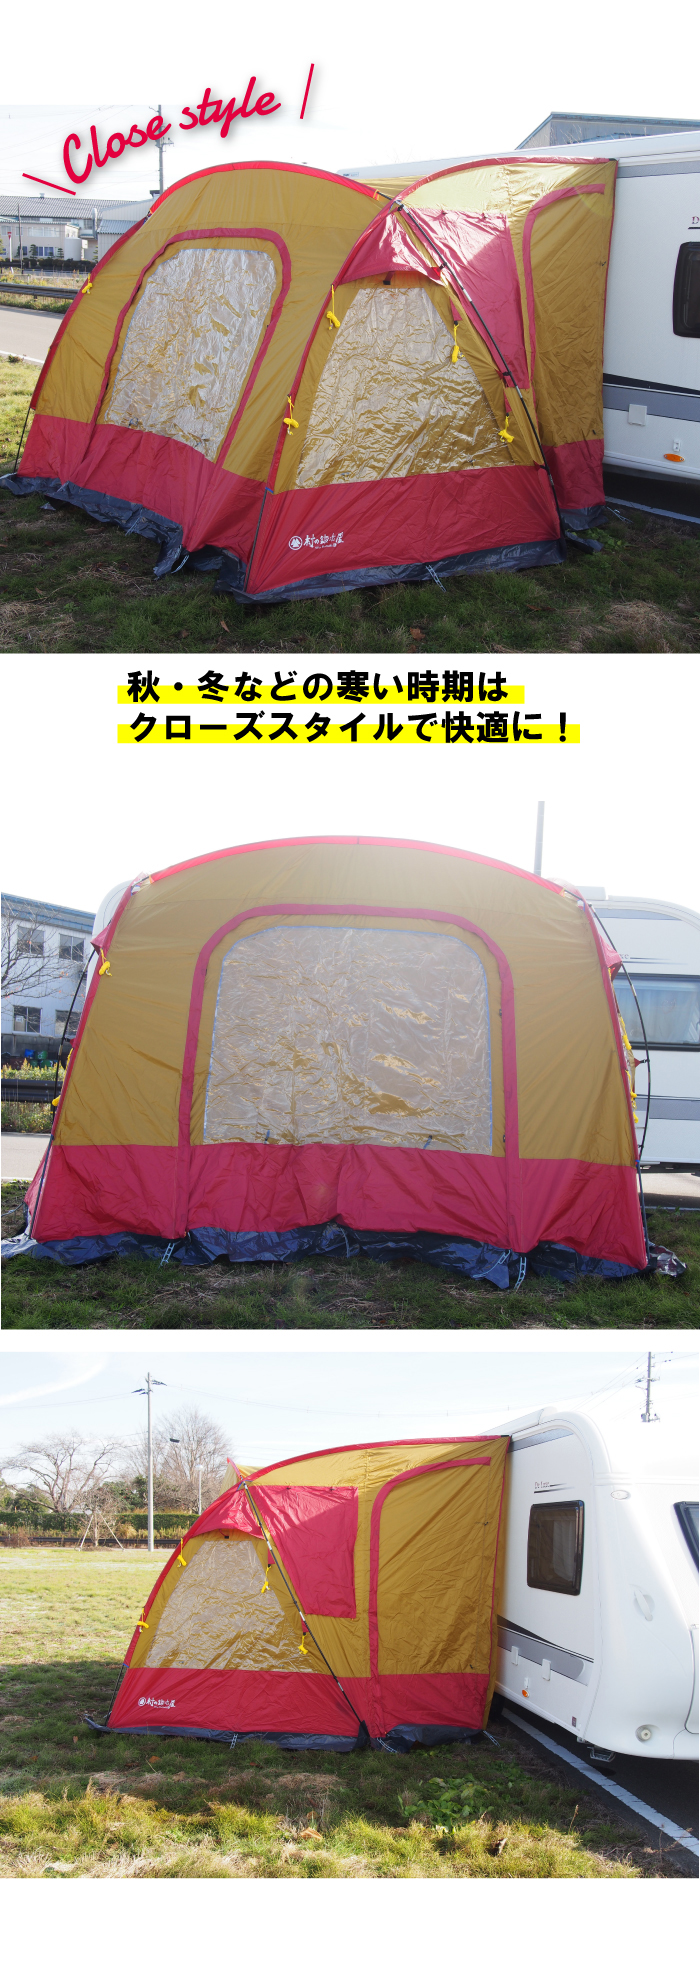 TML (Trailer Mailing List) awning AI-1226 awning tent trailer / c&er and C Rails to install side tent! Trailer side Tenth Edition! & MURANOKAJIYA | Rakuten Global Market: In stock now! TML (Trailer ...